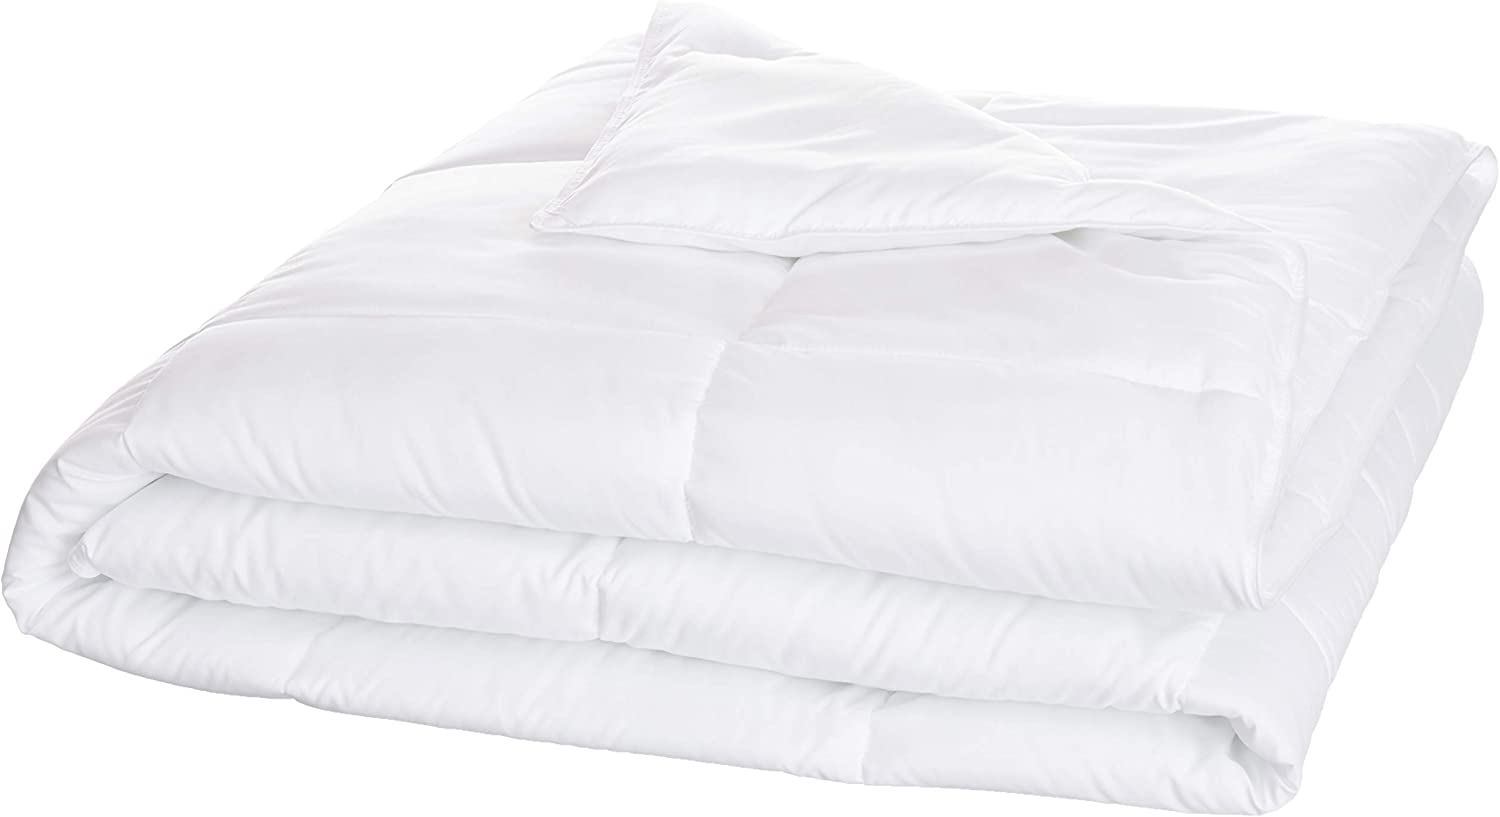 AmazonBasics Conscious Series Down-Alternative Comforter with Recycled Poly Fill - King